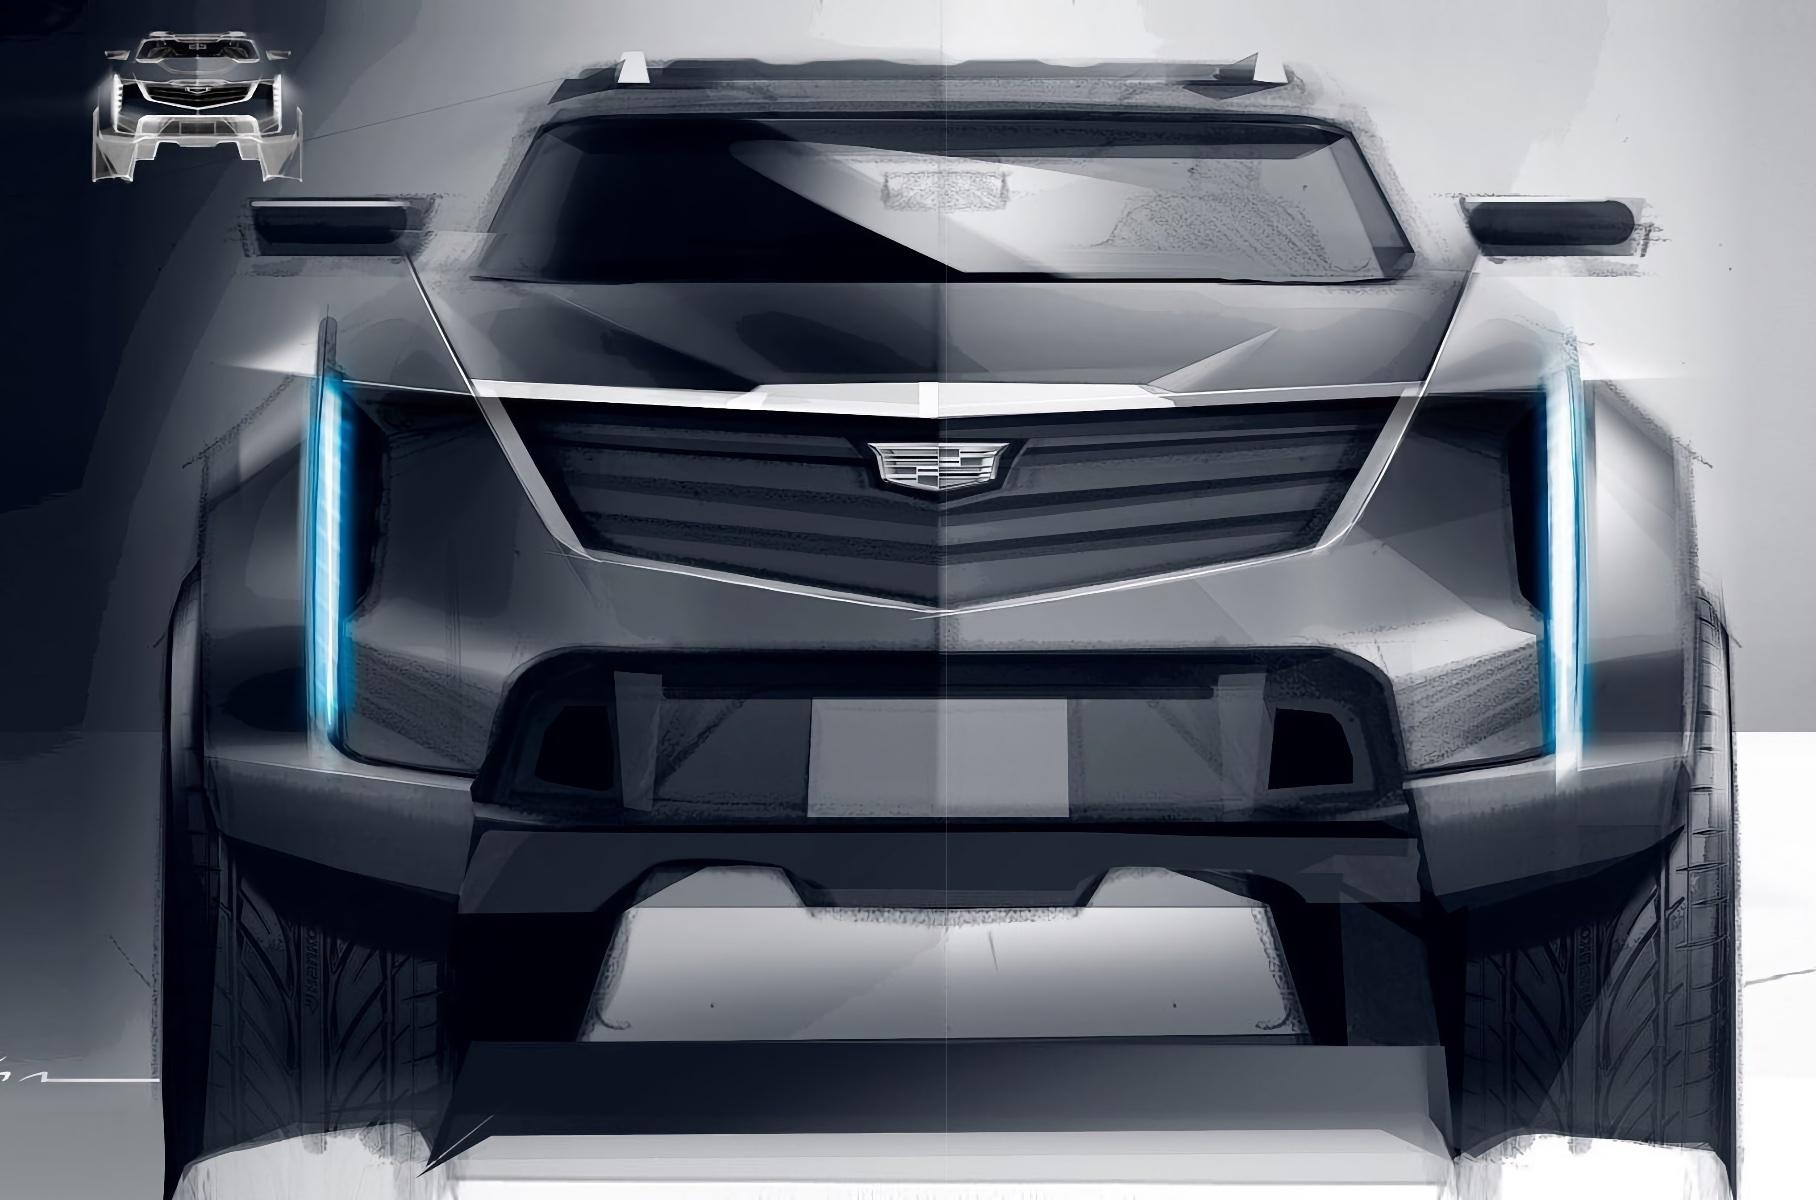 GM Design has shared images across its social media pages showing a cryptic well-equipped Cadillac off-roader. It would seem that the company has been busy designing a capable electric SUV lately.